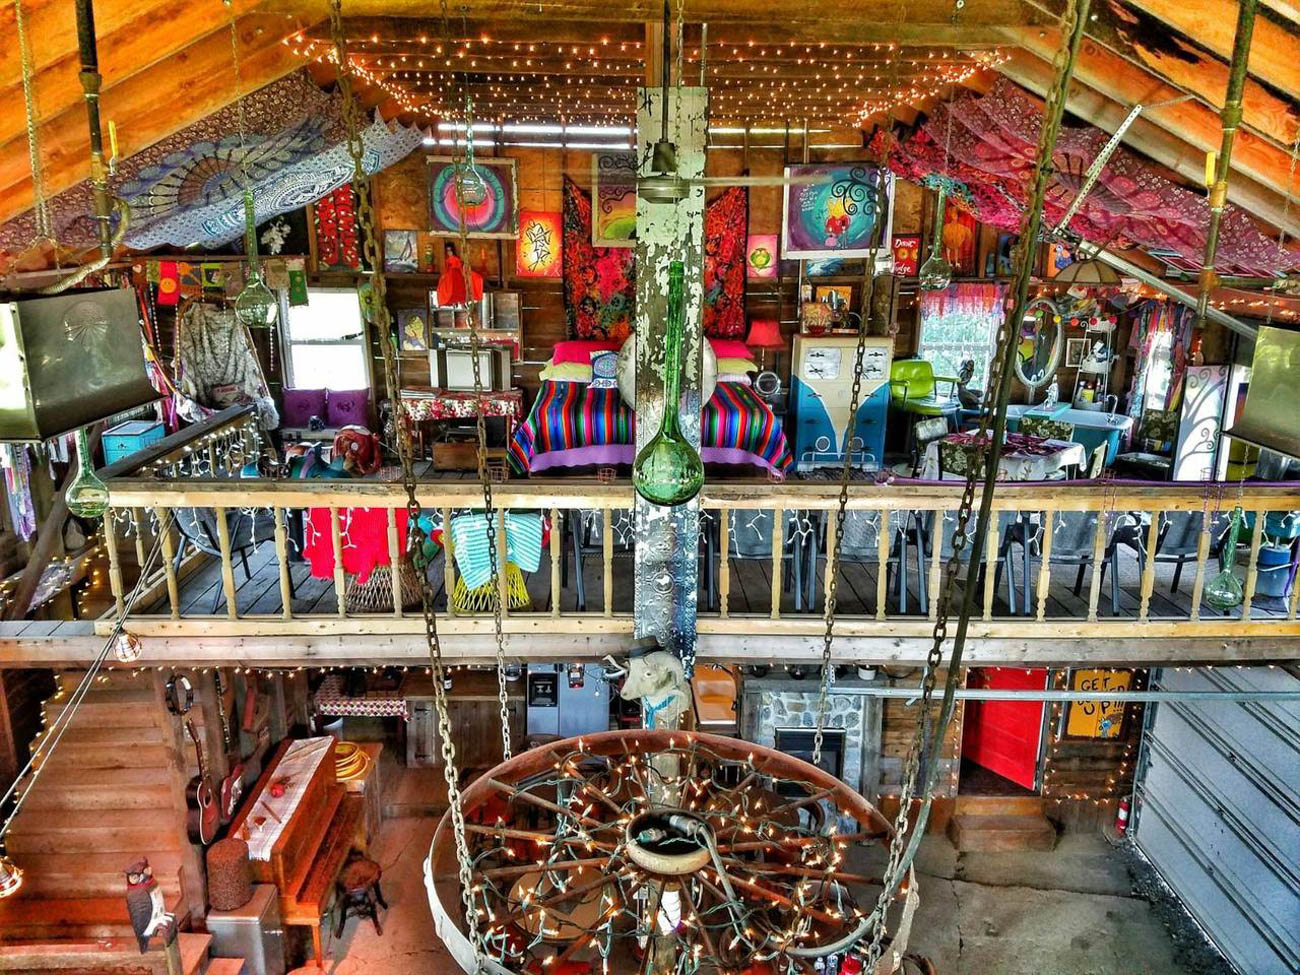 Bock's Jukepoint in Amherst is a magical, colorful barn with a recreated saloon inside, complete with a bar and stage. It has hosted more than 100 musicians (some of them Grammy-nominated!) from around the world. The space was inspired by the shotgun shacks from the Mississippi Delta. It sleeps four with 1 bedroom and 1 bath. It's about four hours from Cincinnati. / Image: Stefan and Stacey Bock // Published: 5.21.19